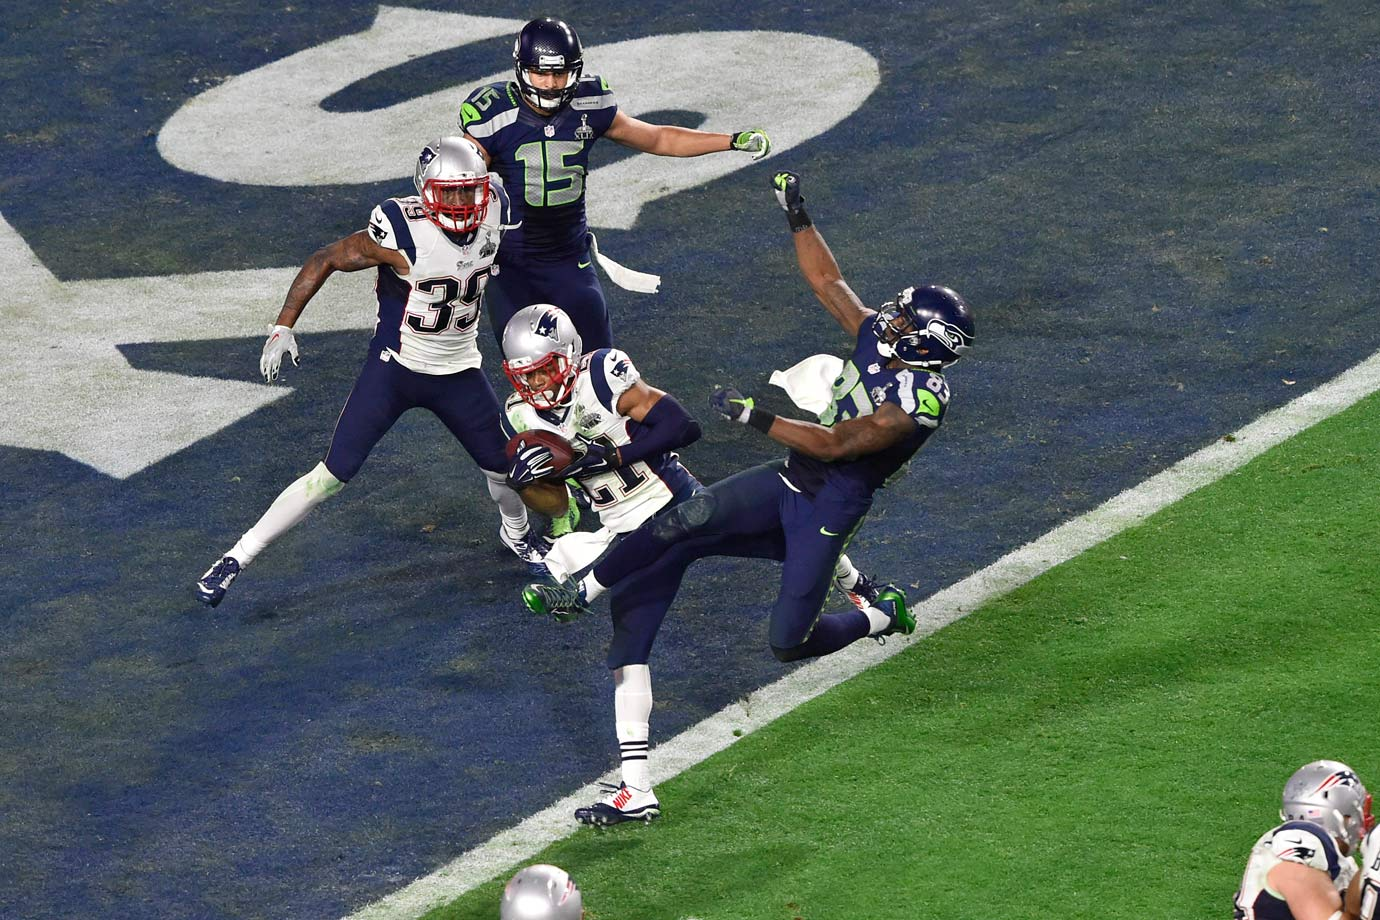 New England Patriots cornerback Malcolm Butler jumped in front of Seahawks wideout Ricardo Lockette to intercept a pass that would have sealed back-to-back championships for Seattle. Armchair quarterbacks will forever second-guess head coach Pete Carroll's decision to throw the ball on second-and-goal from the 1-yard line rather than run Marshawn Lynch.